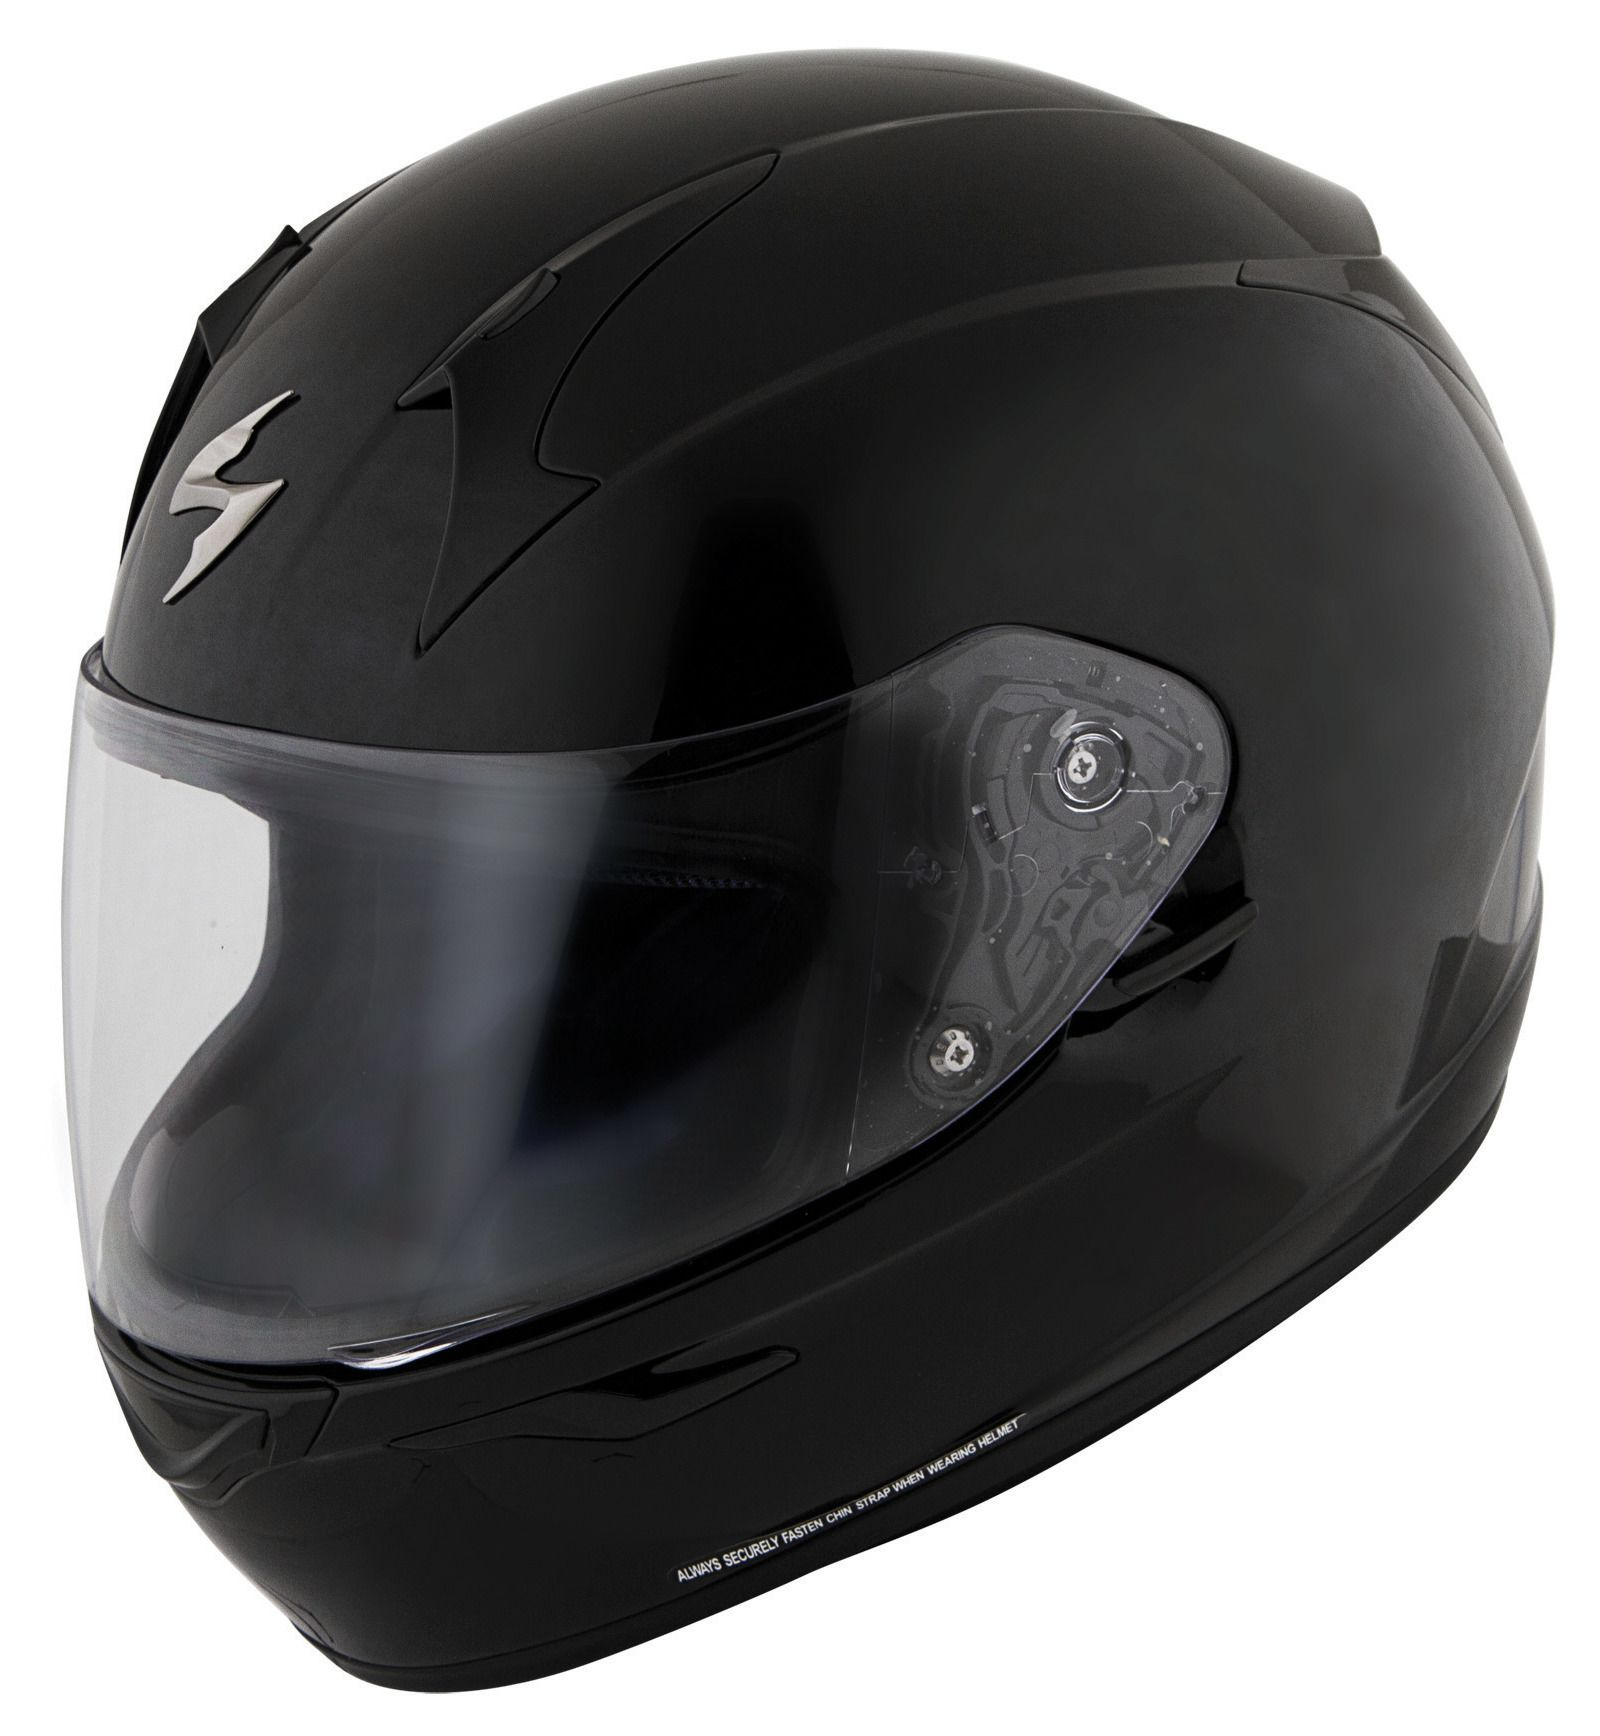 exo scorpion helmet r410 helmets motorcycle revzilla face gear motorcycles cycle riding approved sold mc matte covert 410 hel looking